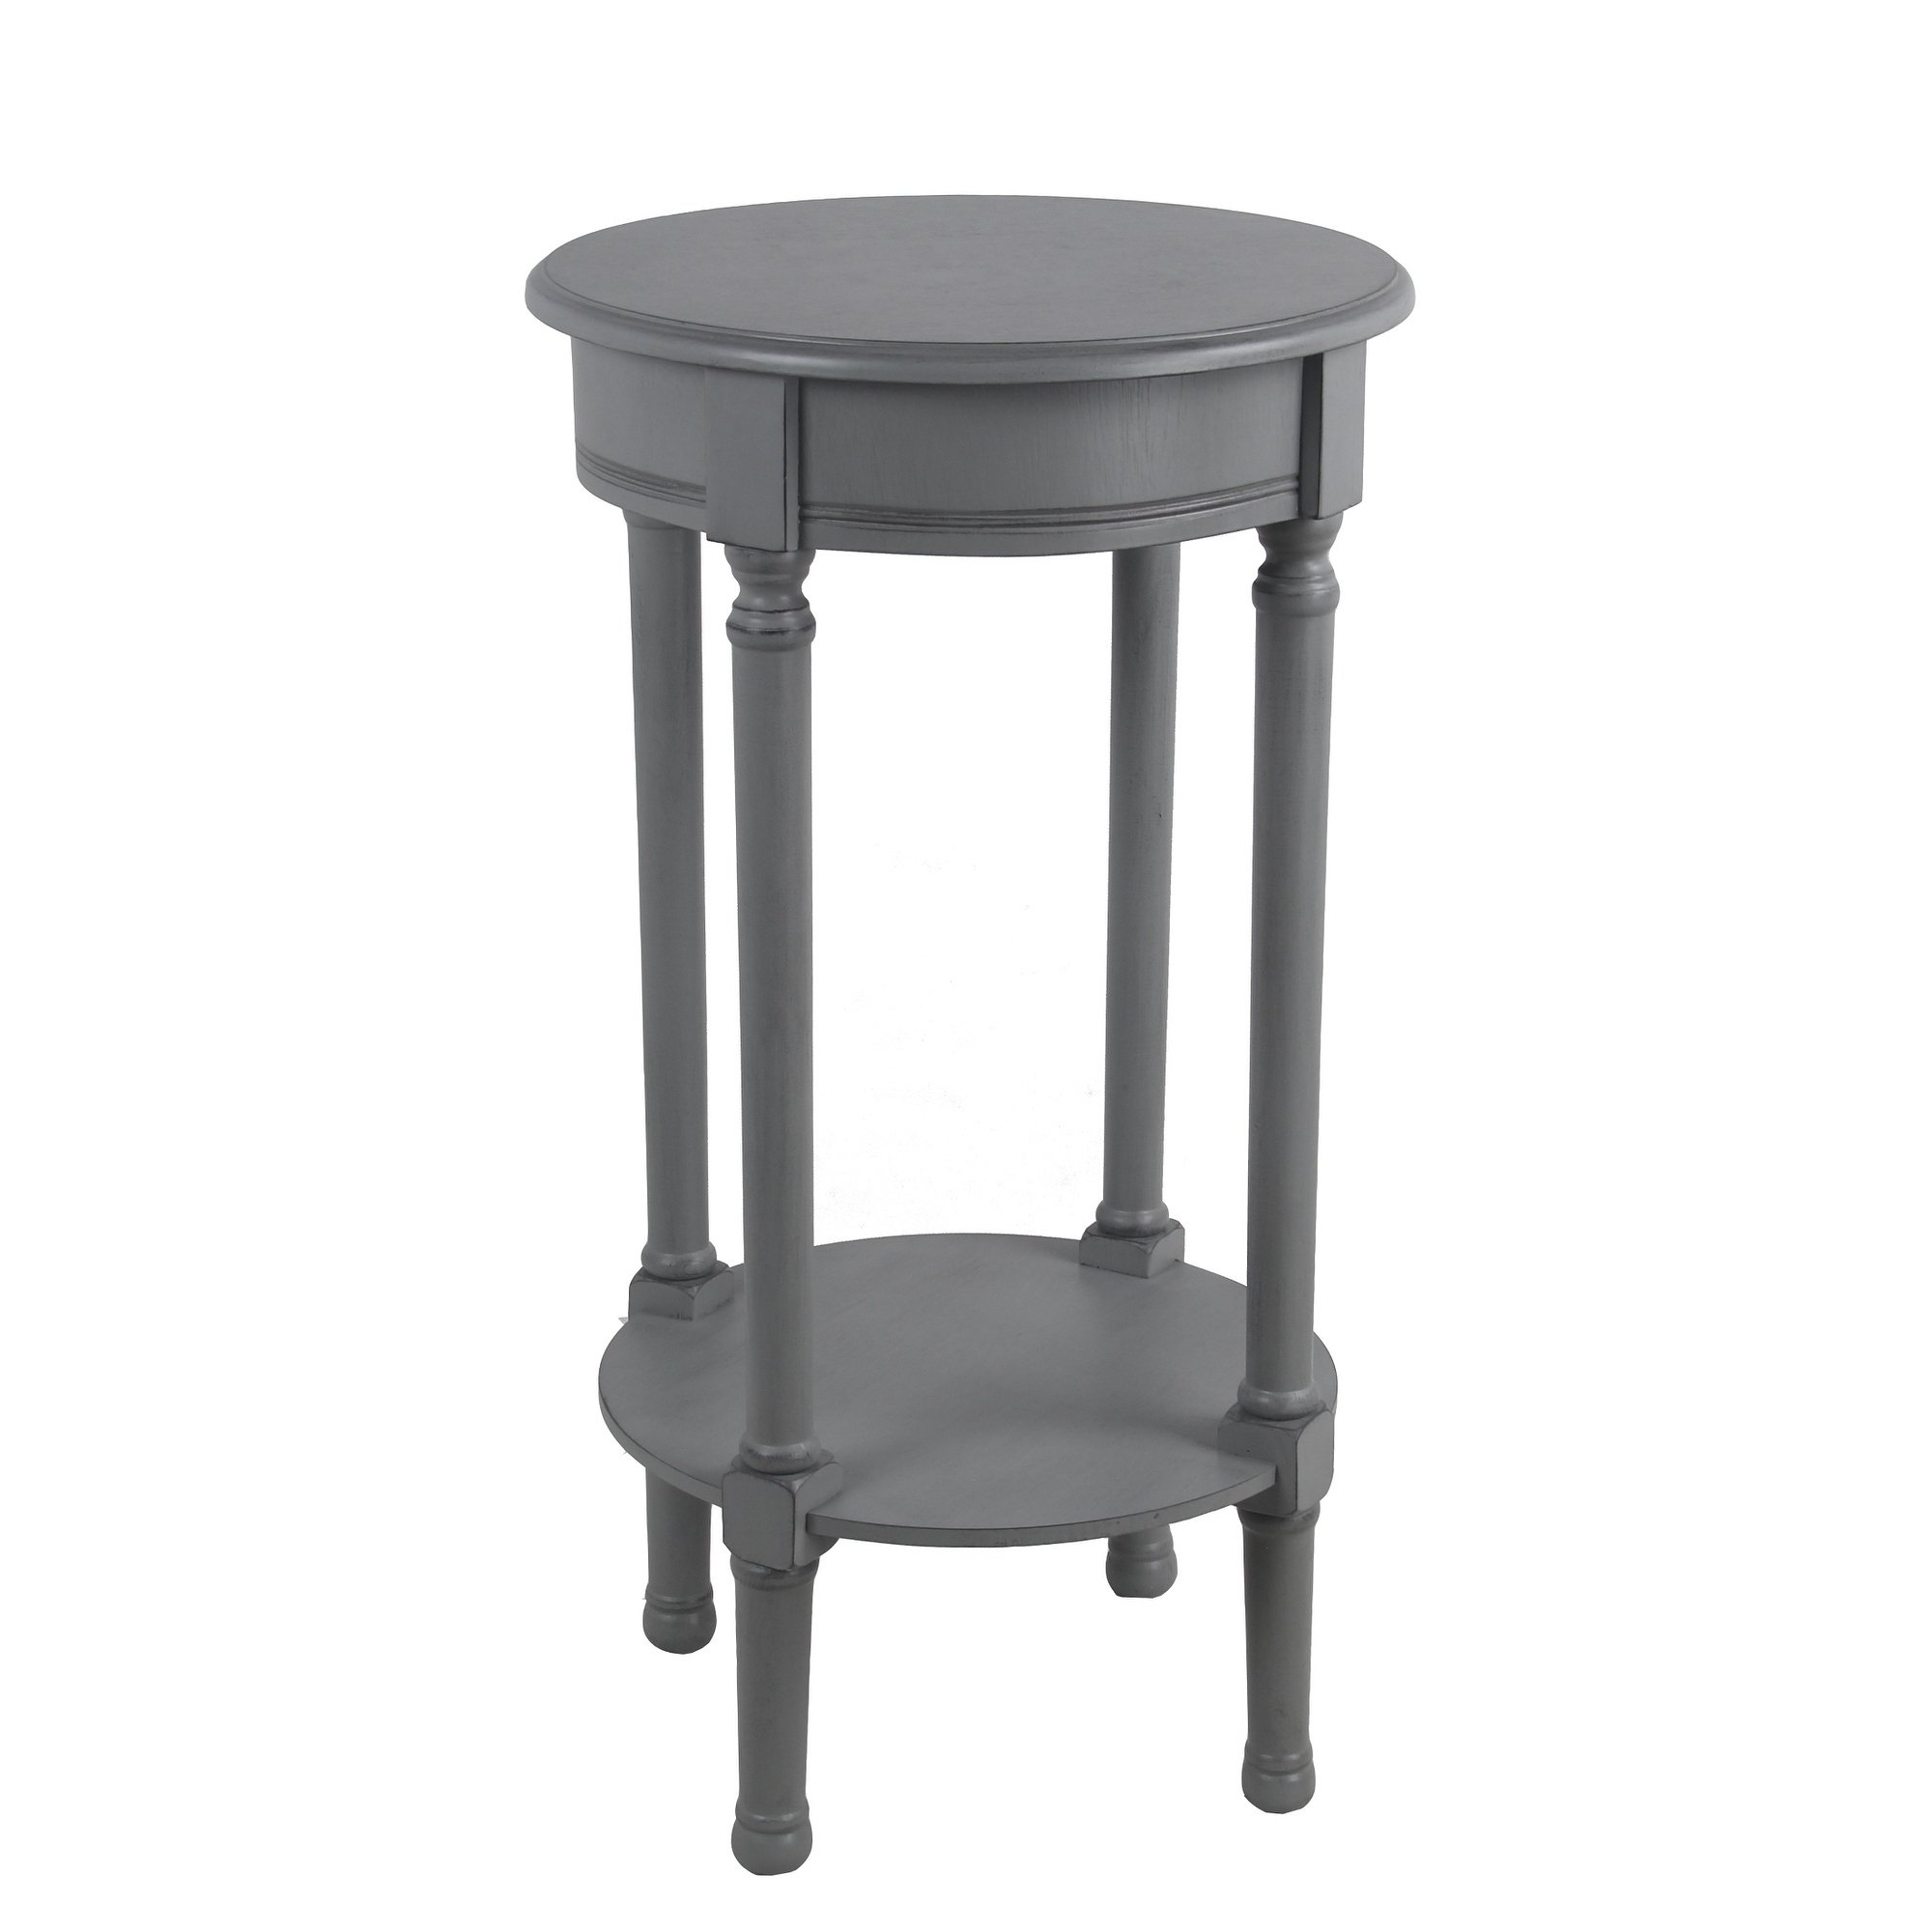 privilege vendee gray round accent table easy assemble tools required free shipping today knotty pine bar stools outdoor top covers dining pedestal base only bedroom mirrors chest